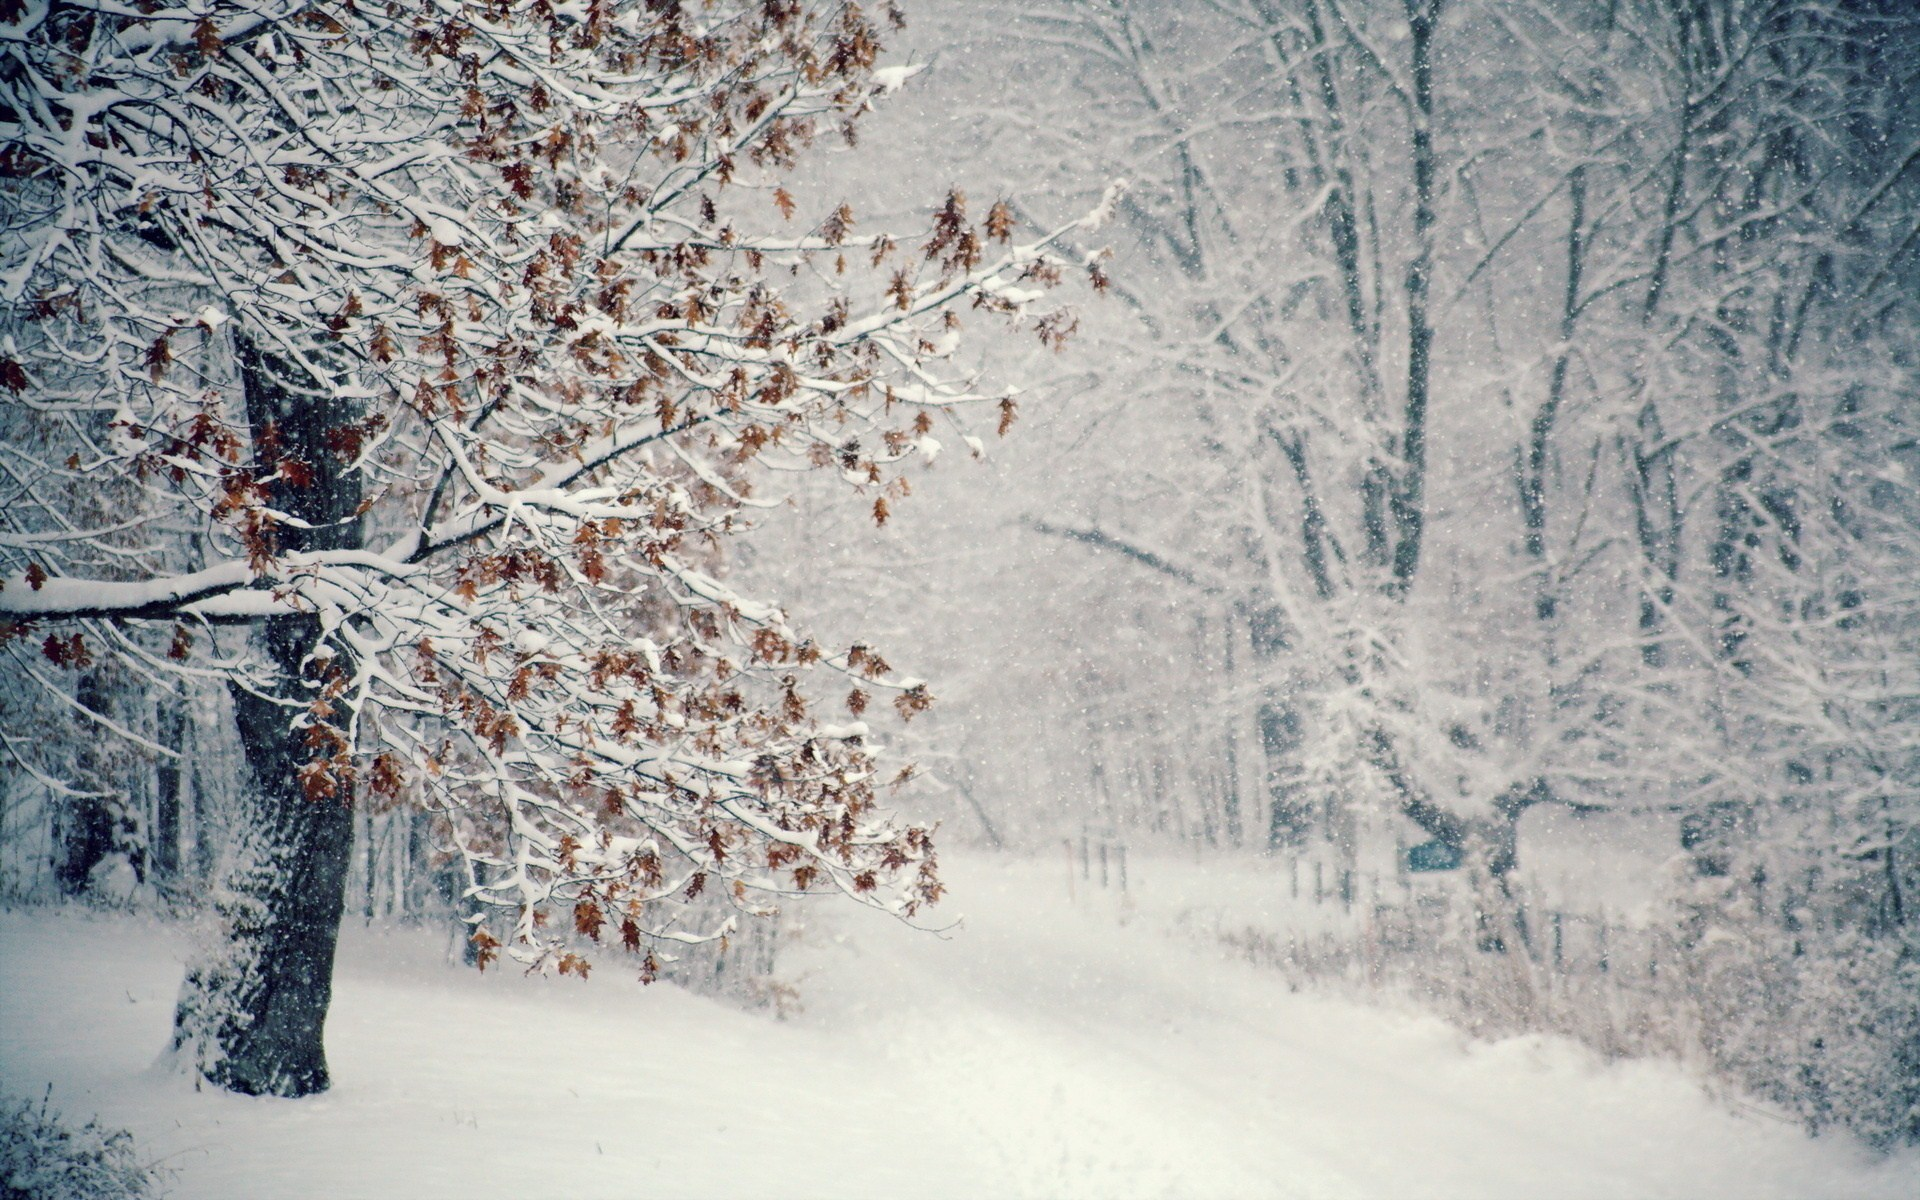 Forest Nature Winter Snow Snowflakes Photo HD Wallpaper